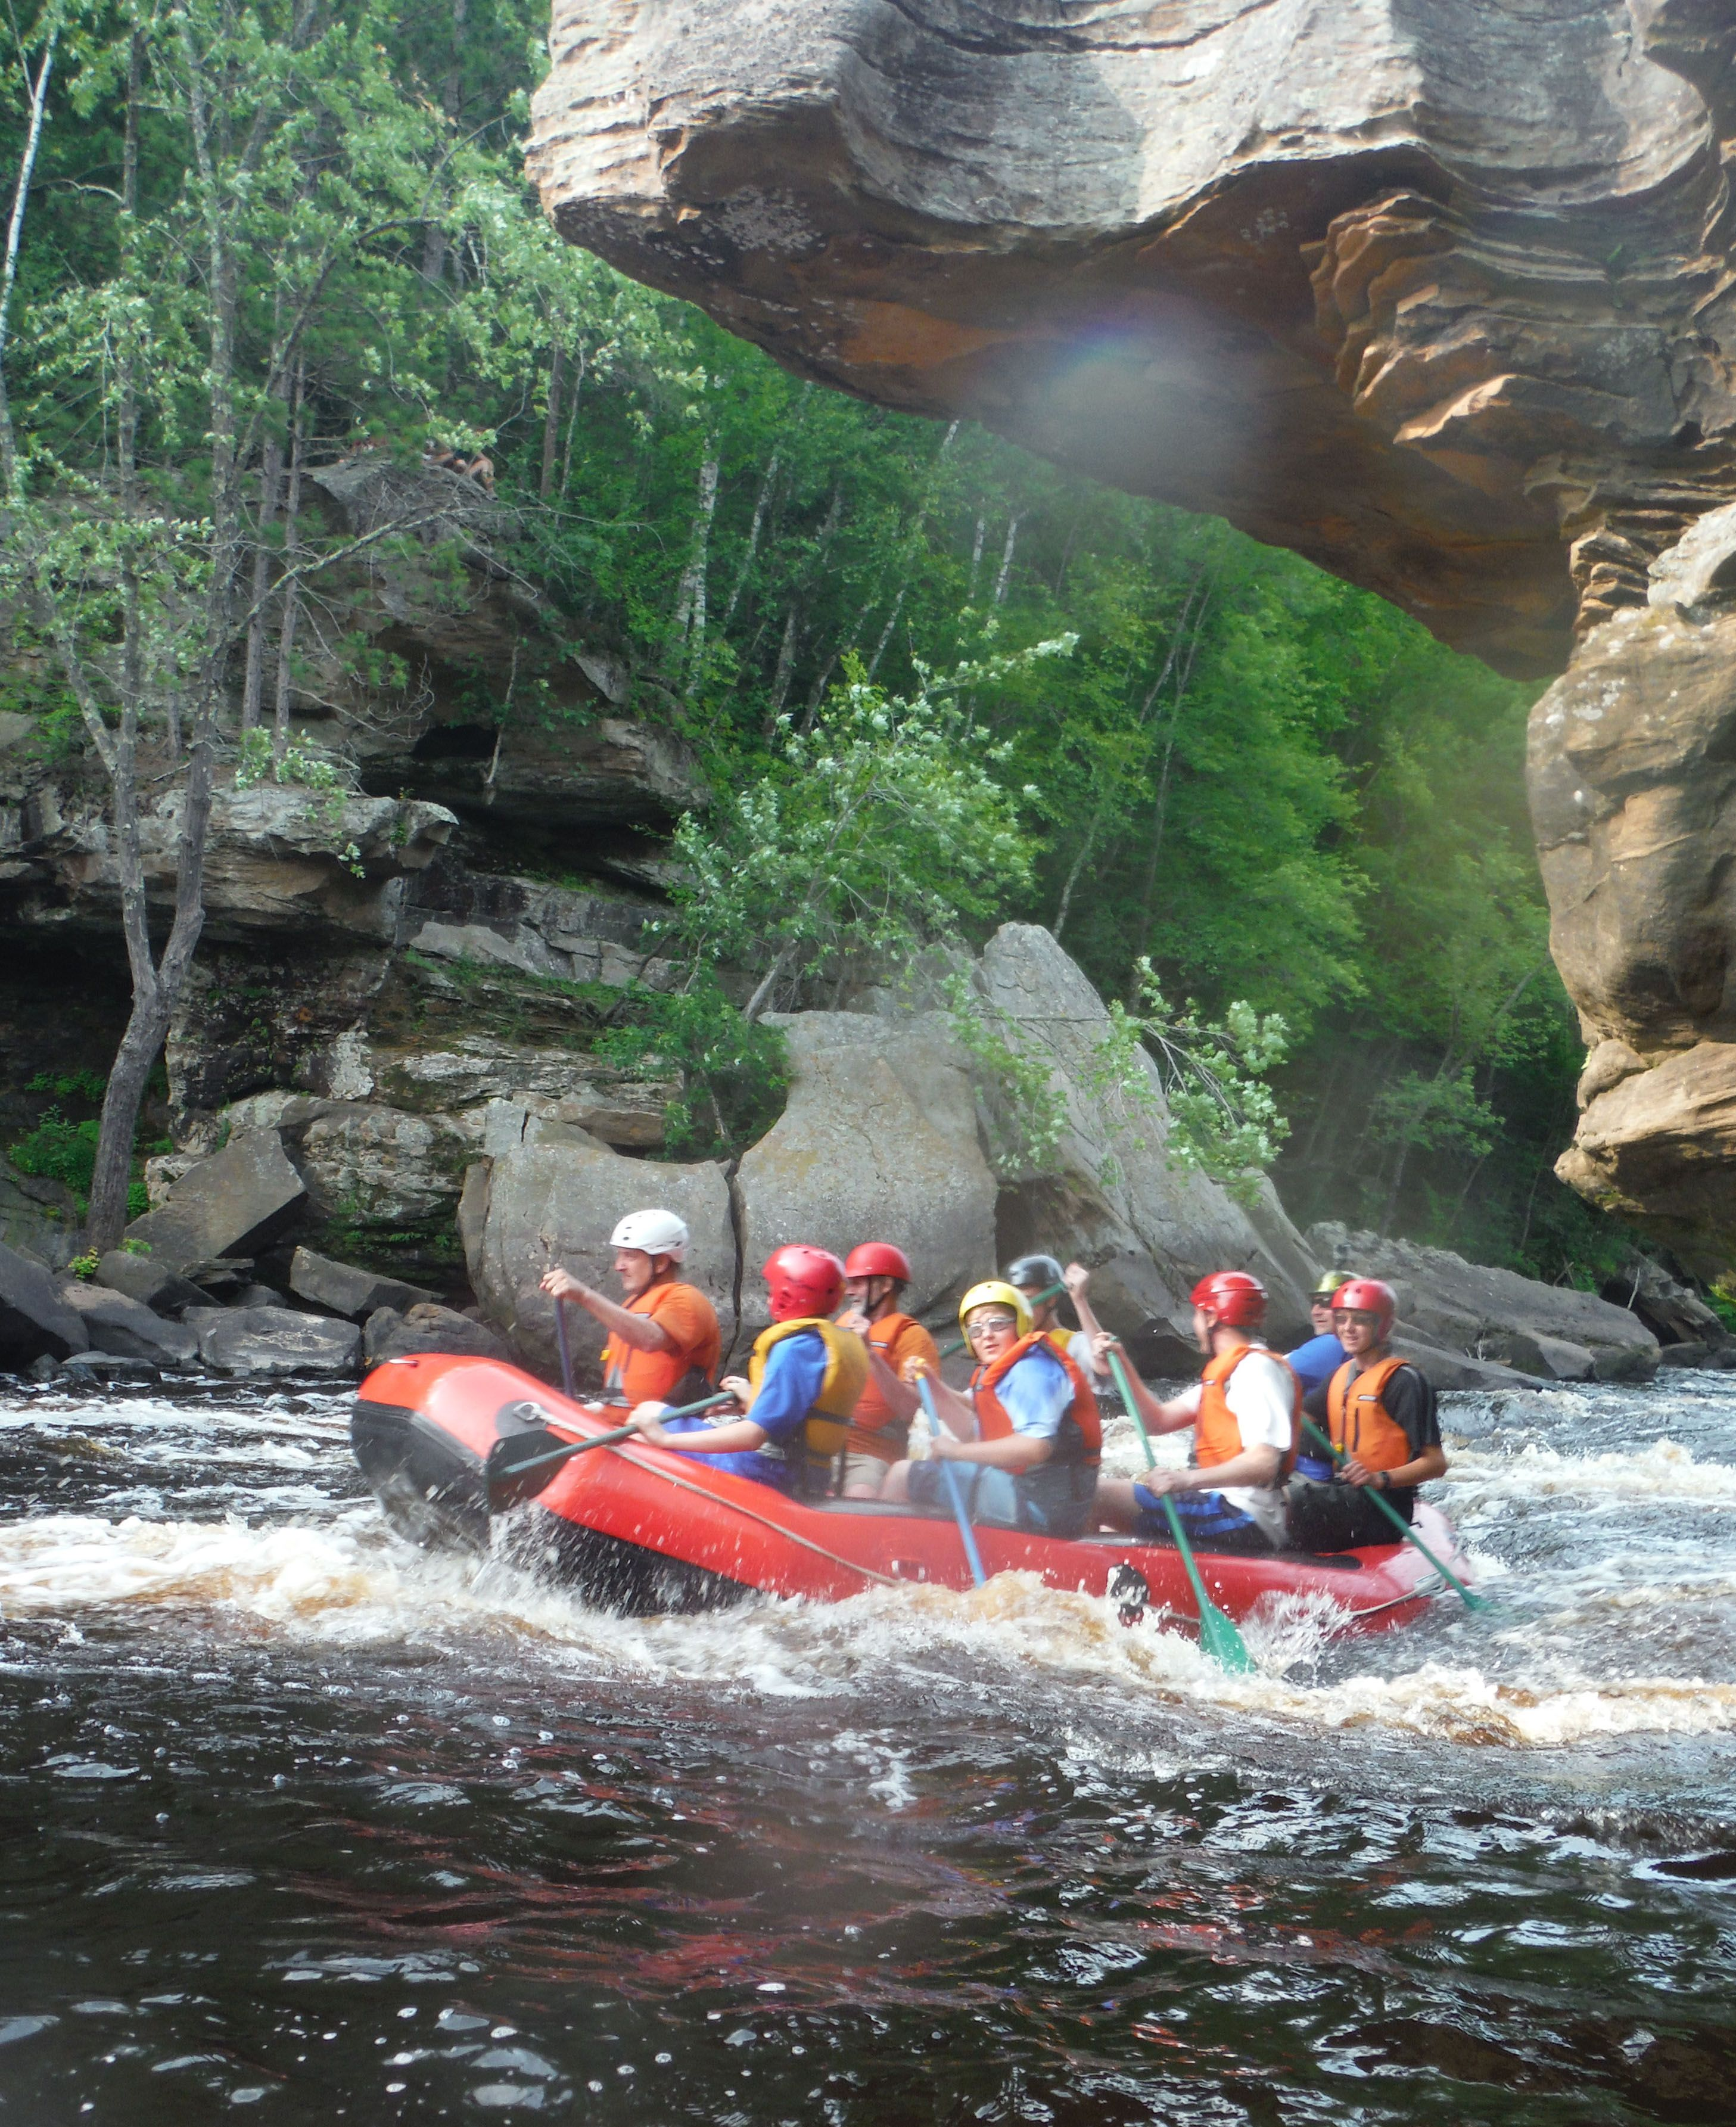 Rafting near Minneapolis Minnesota - contact MNrafting.com for a Kettle River Rafting Adventure.  The Kettle flows through Banning State Park. #mnrafting #mnfun #mnadventure